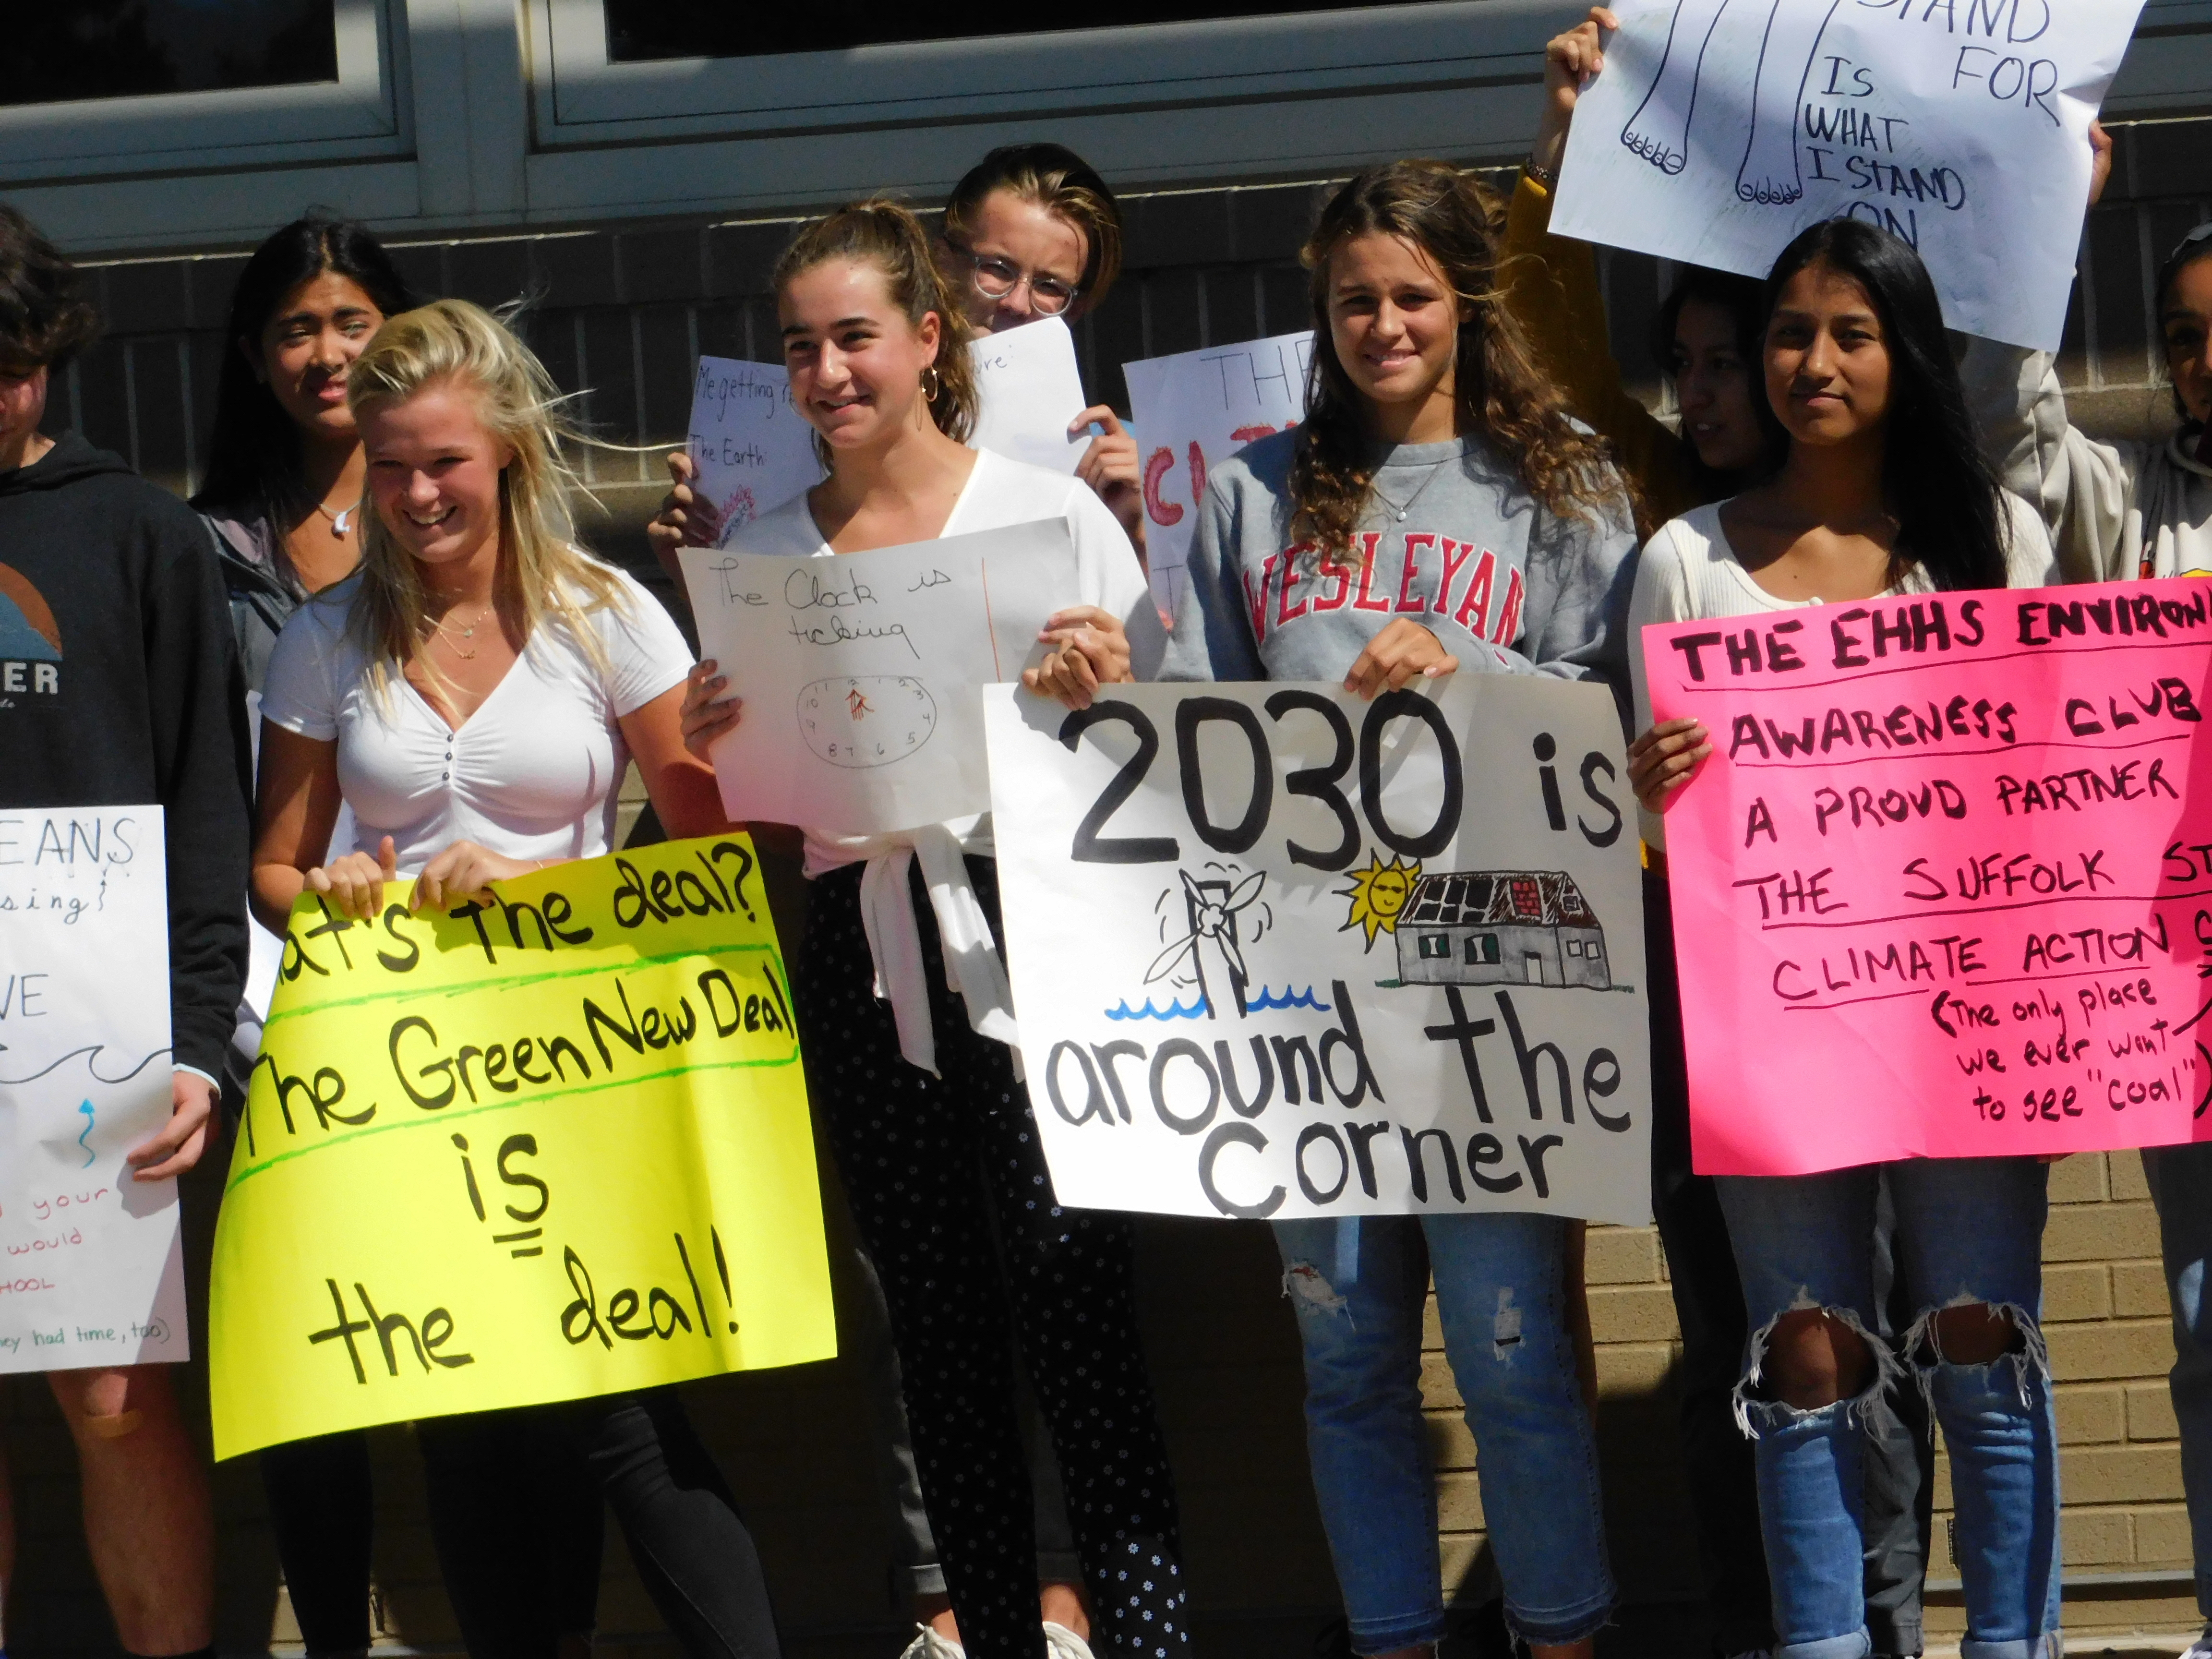 The East Hampton High School Environmental Awareness Club walked out of class on Friday afternoon in solidarity with major climate change strikes happening throughout the globe. ELIZABETH VESPE